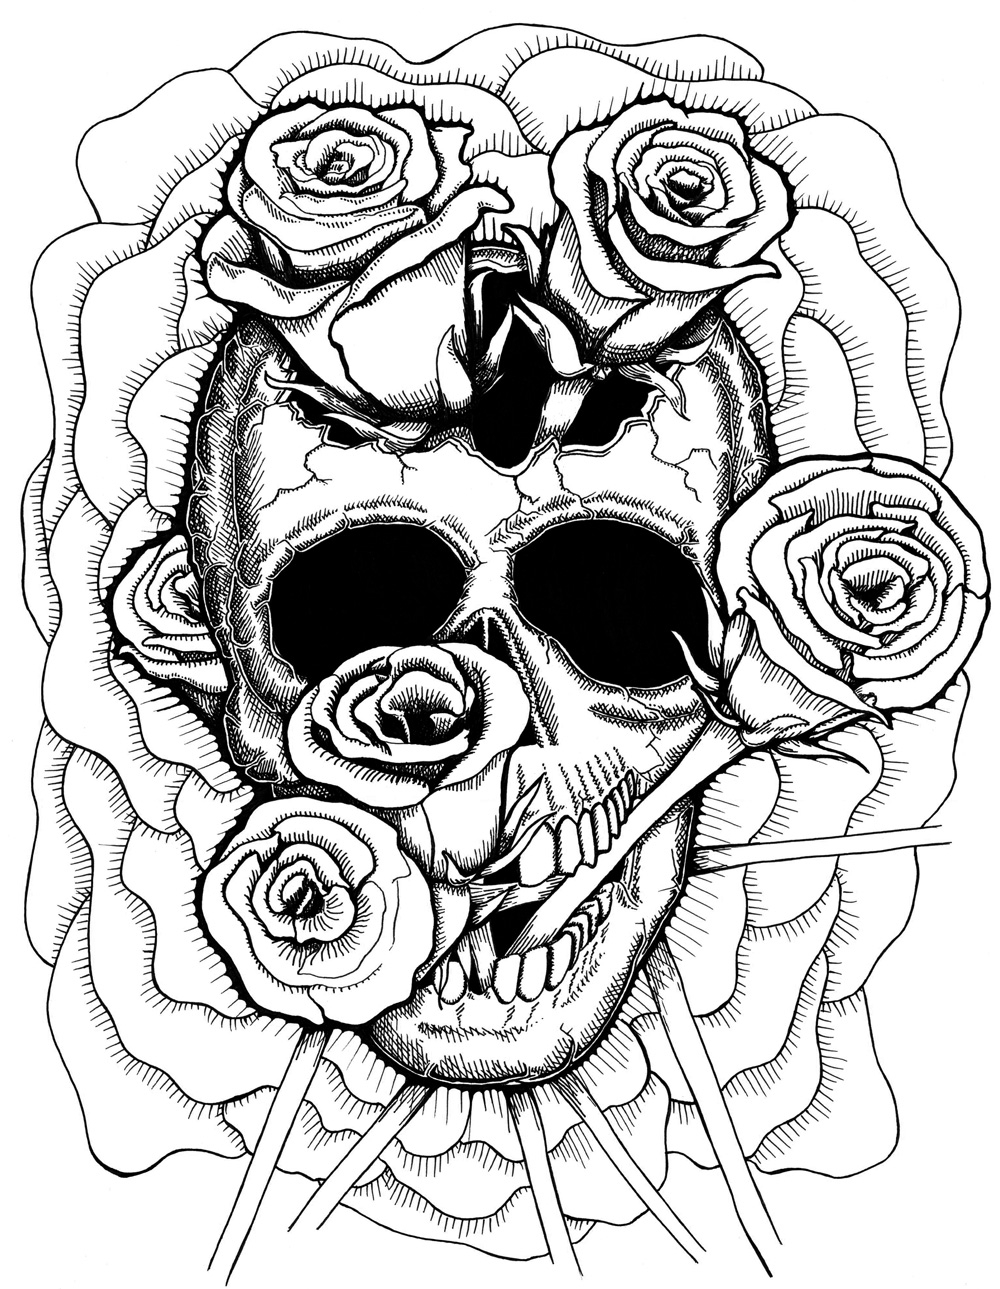 Trippy Coloring Pages Trippy Mushroom Coloring Pages Google Search Tattoo Goals On Image